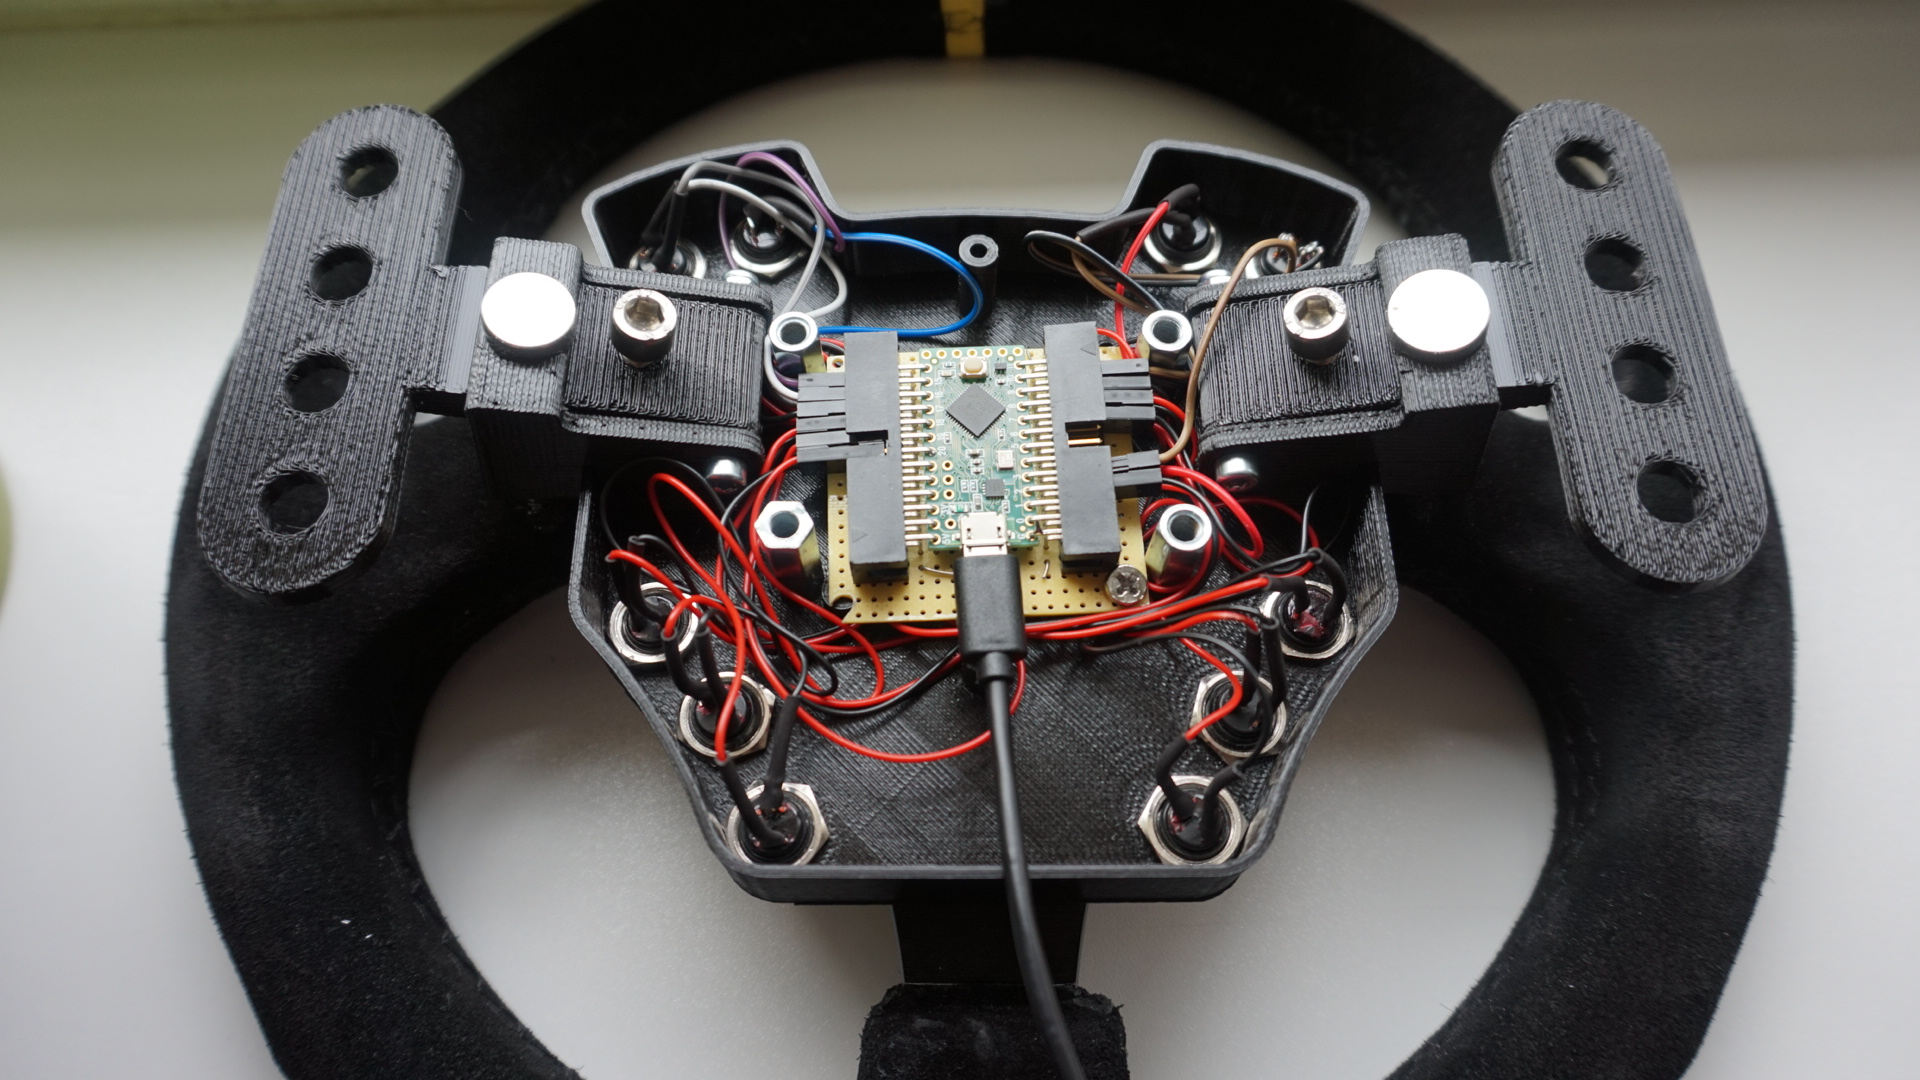 Diy Der Wheel Buttonplate Rim Thread Archiv Seite 6 How To Wire A Rotary Switch With Leo Bu0836x Board Virtual Racing Ev Forum